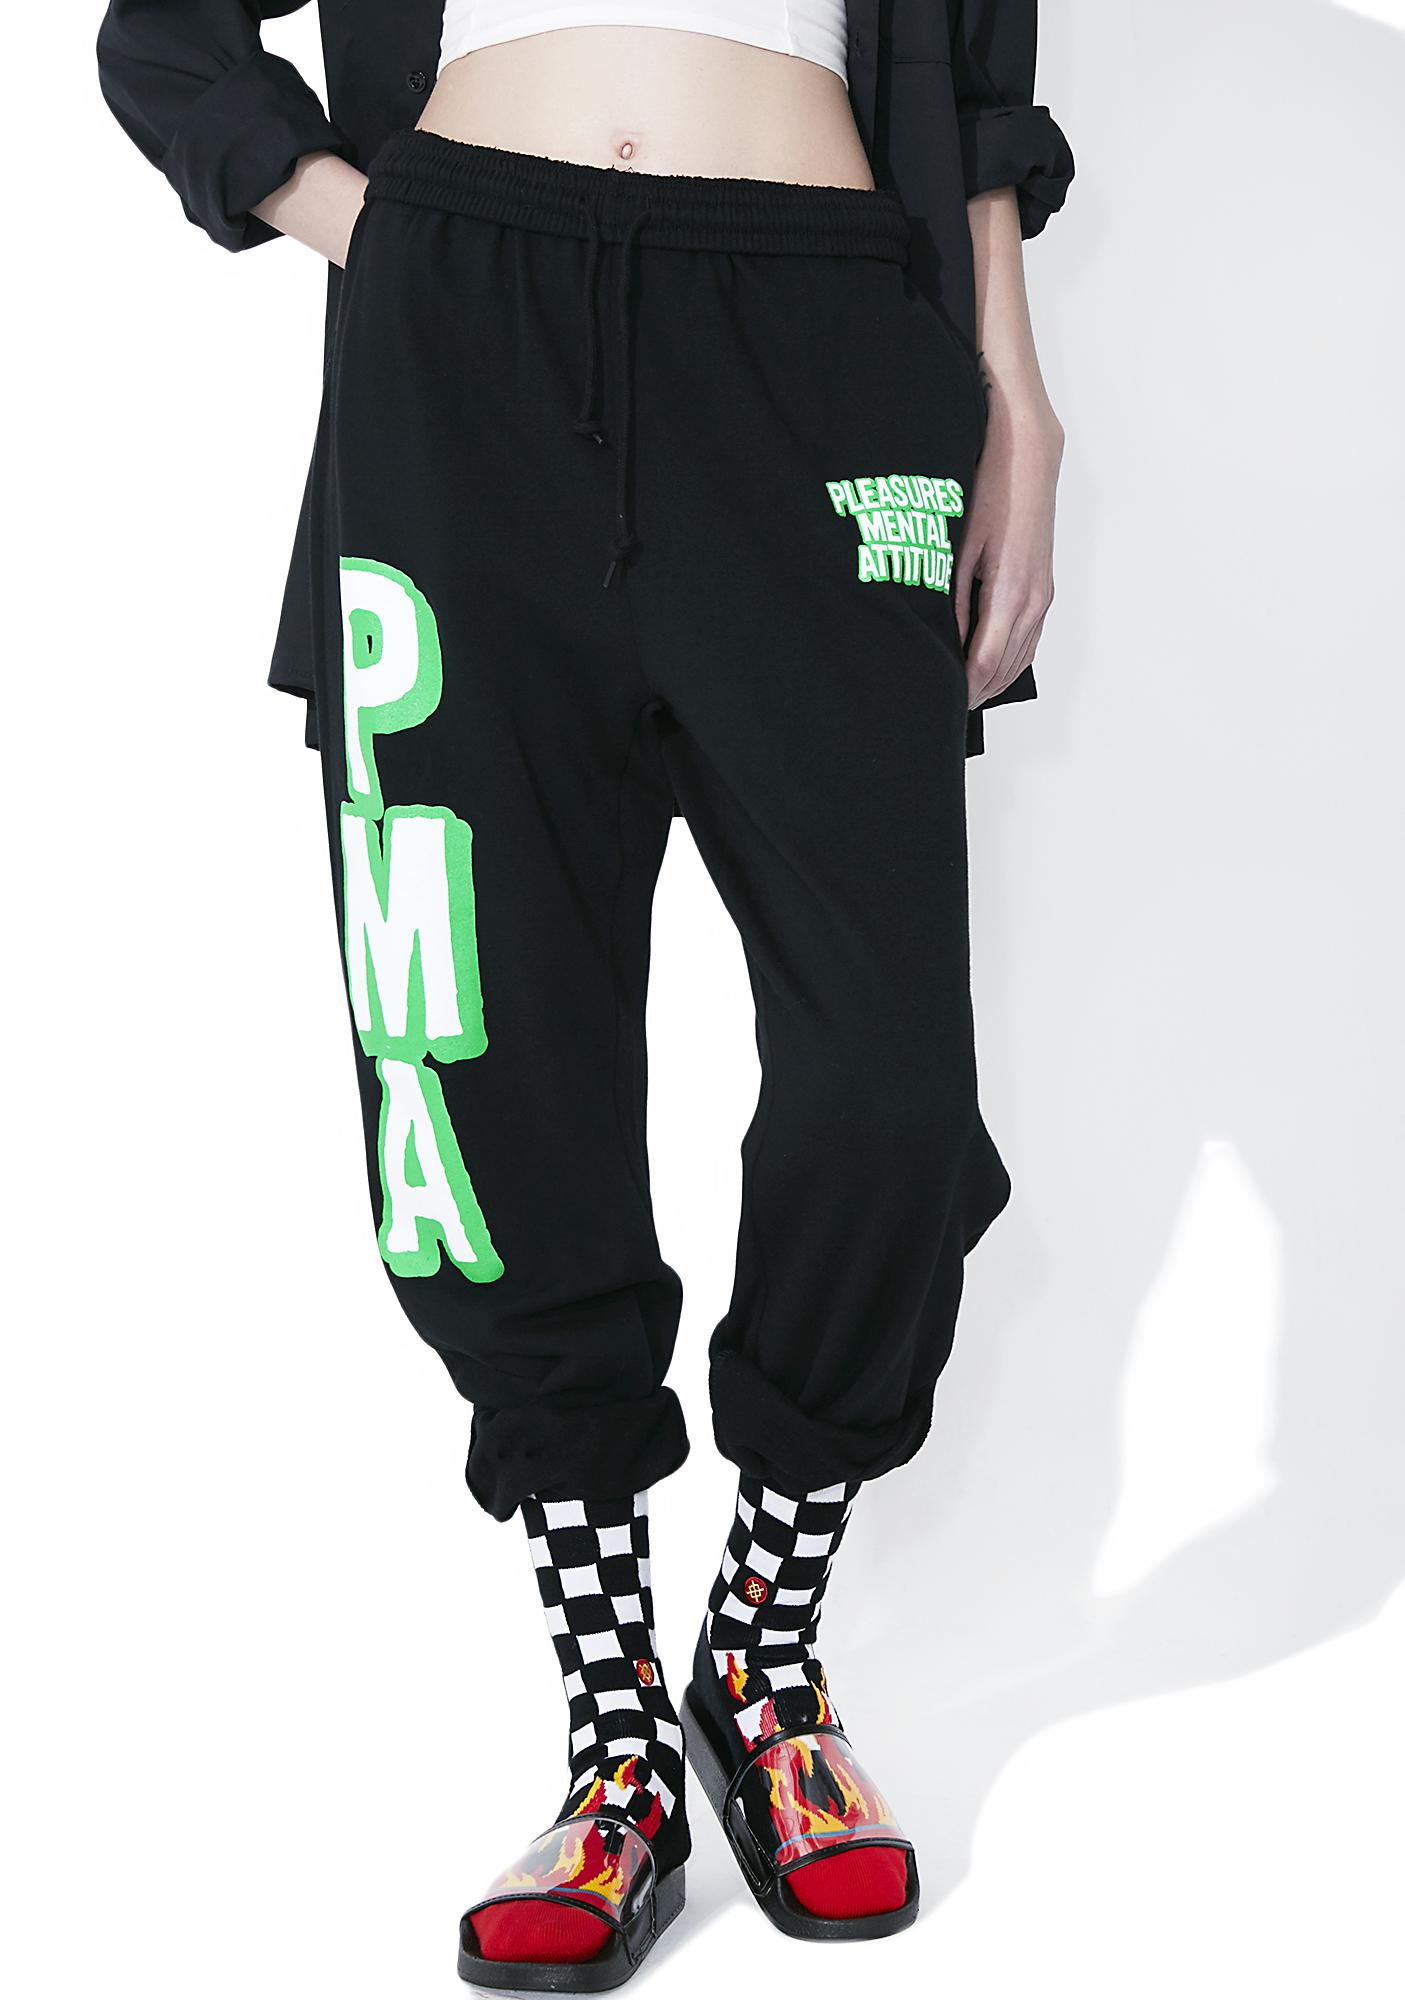 Pleasures Mental Attitude Sweatpants